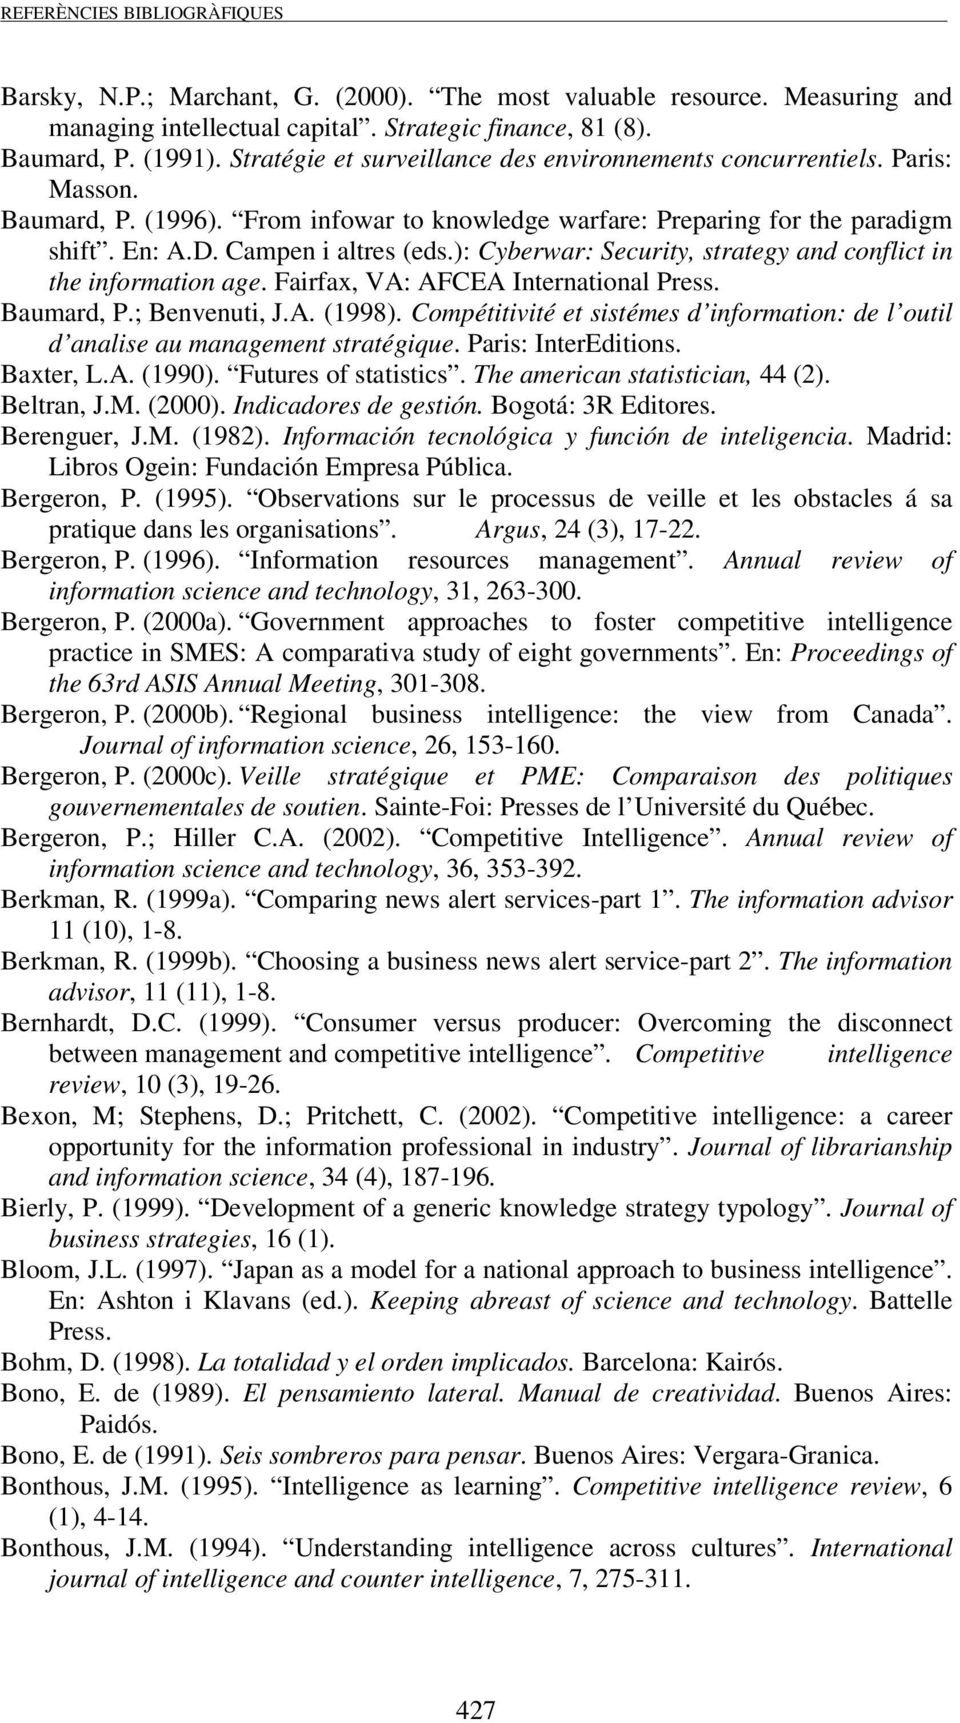 ): Cyberwar: Security, strategy and conflict in the information age. Fairfax, VA: AFCEA International Press. Baumard, P.; Benvenuti, J.A. (1998).